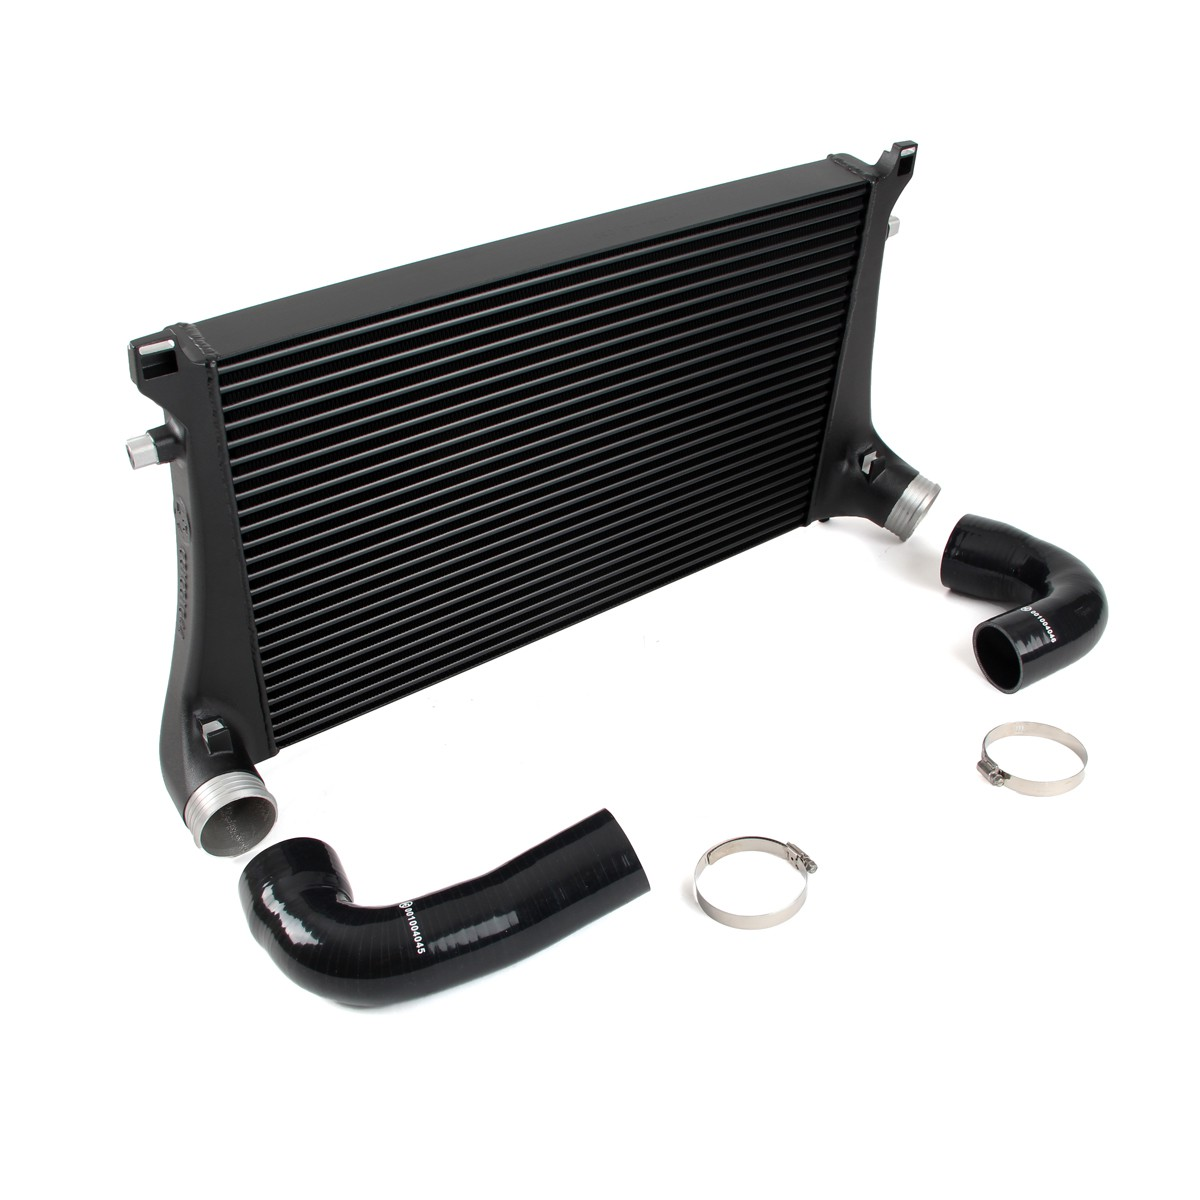 Wagner Tuning Competition Intercooler Kit for MkVII Volkswagen Golf/GTI/R & 8V Audi A3/S3 1.8T/2.0T EA888 Gen 3 | WAG-200001048